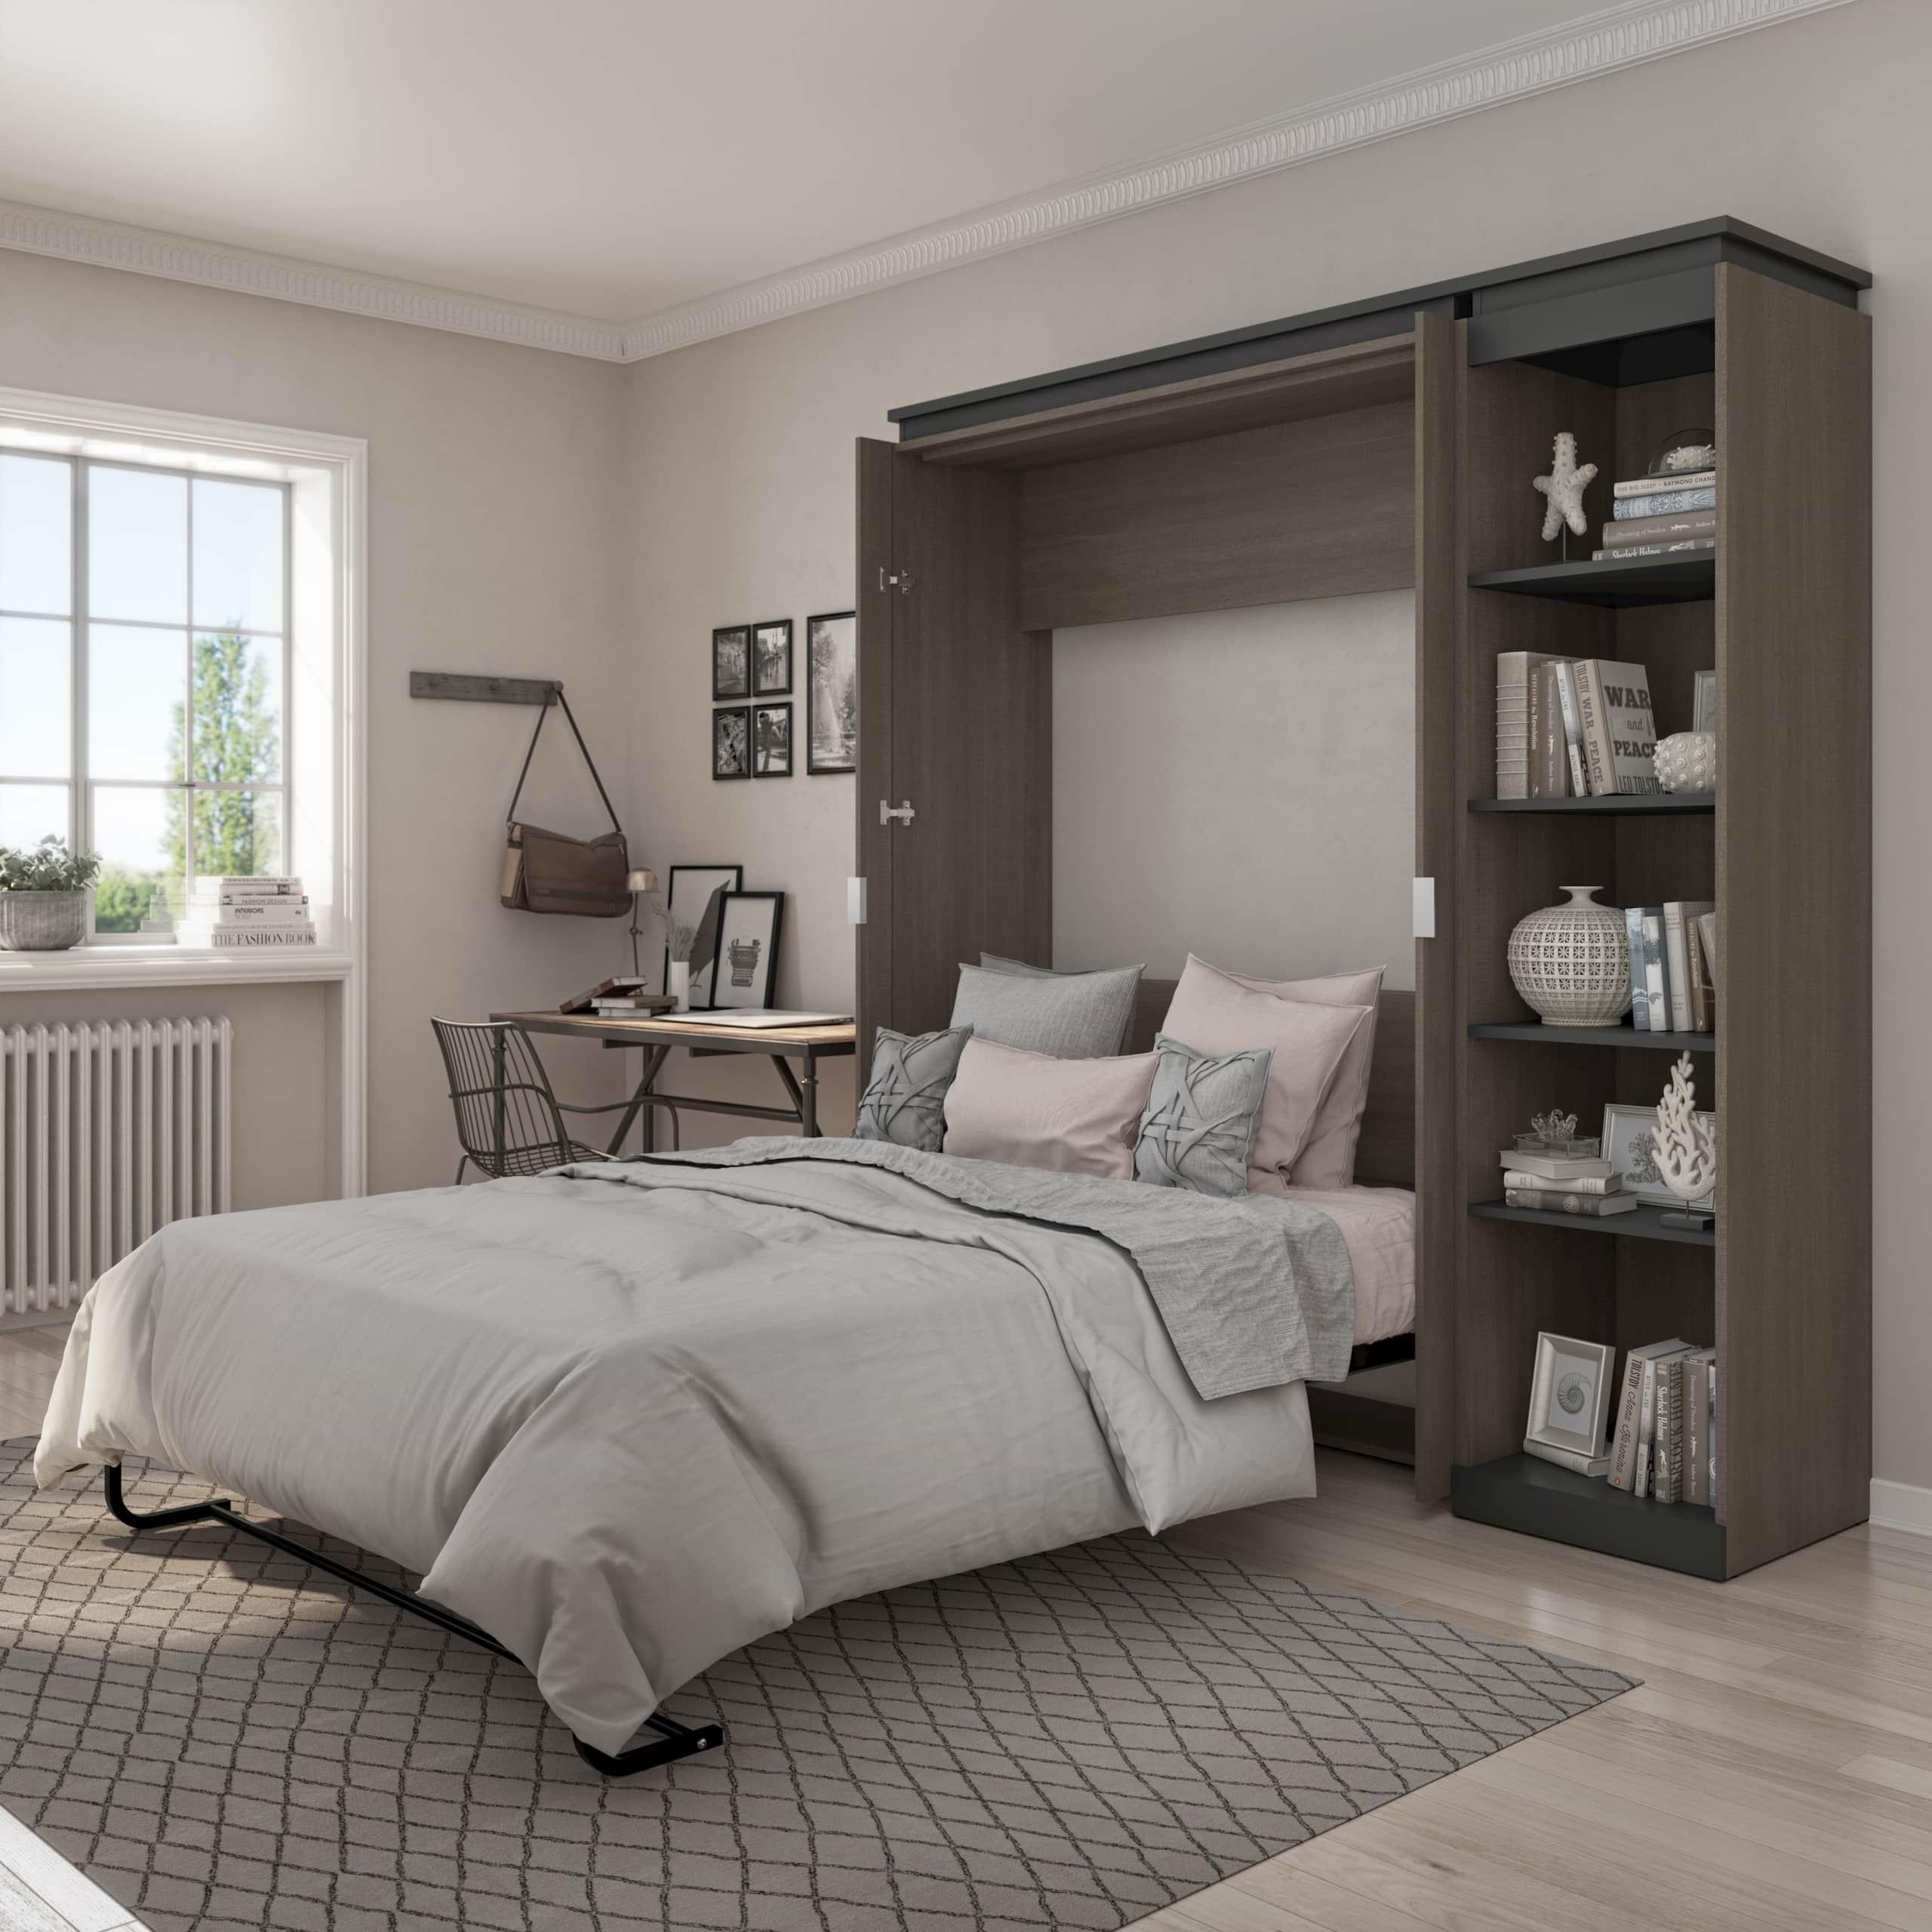 multipurpose room with a Bestar murphy bed